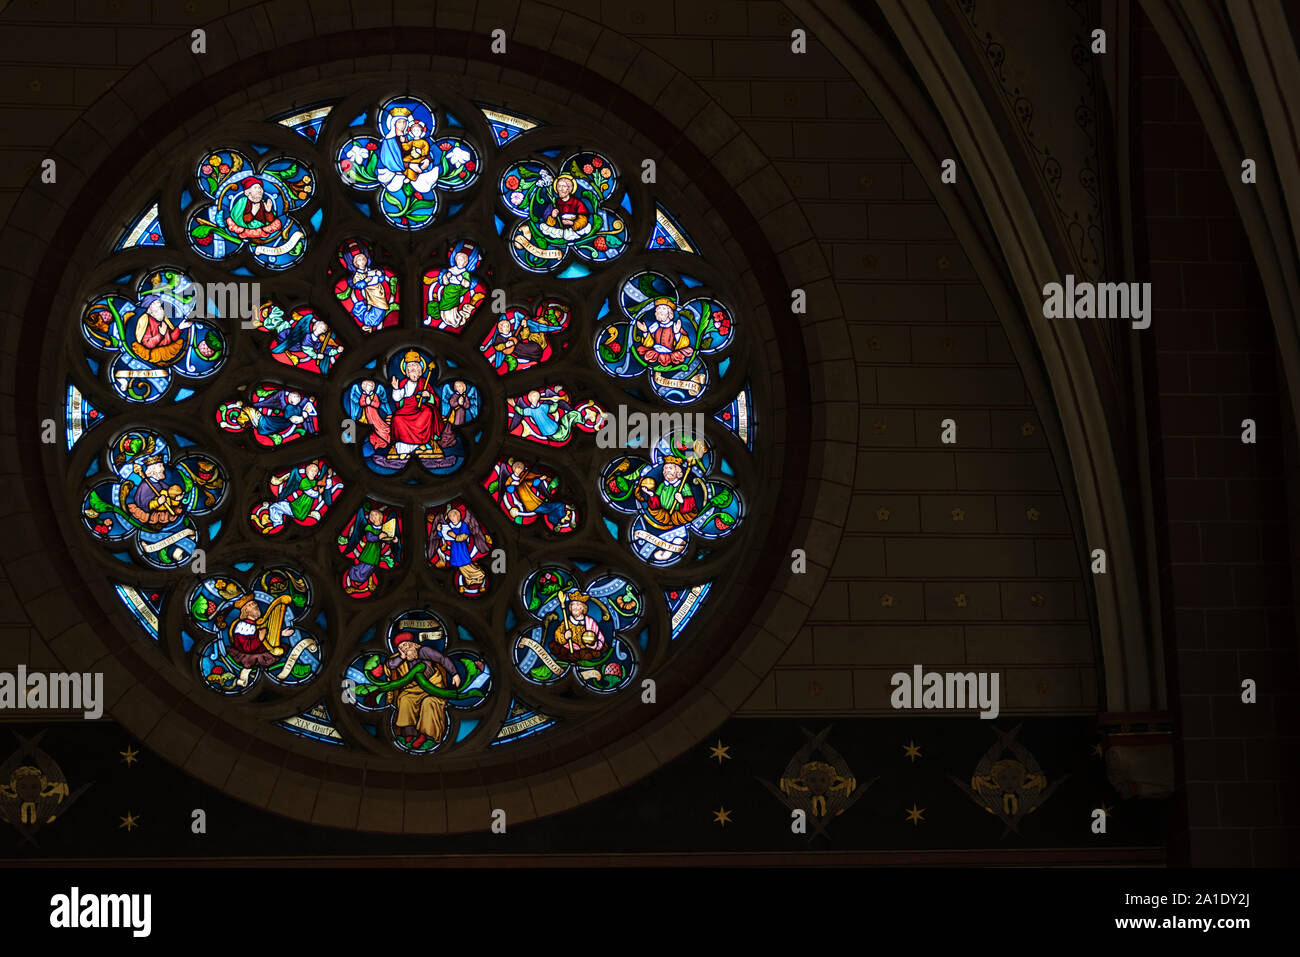 Rose window, stained glass window, as seen in the Cathedral of Our Lady, Antwerp, Flanders, Belgium. Stock Photo